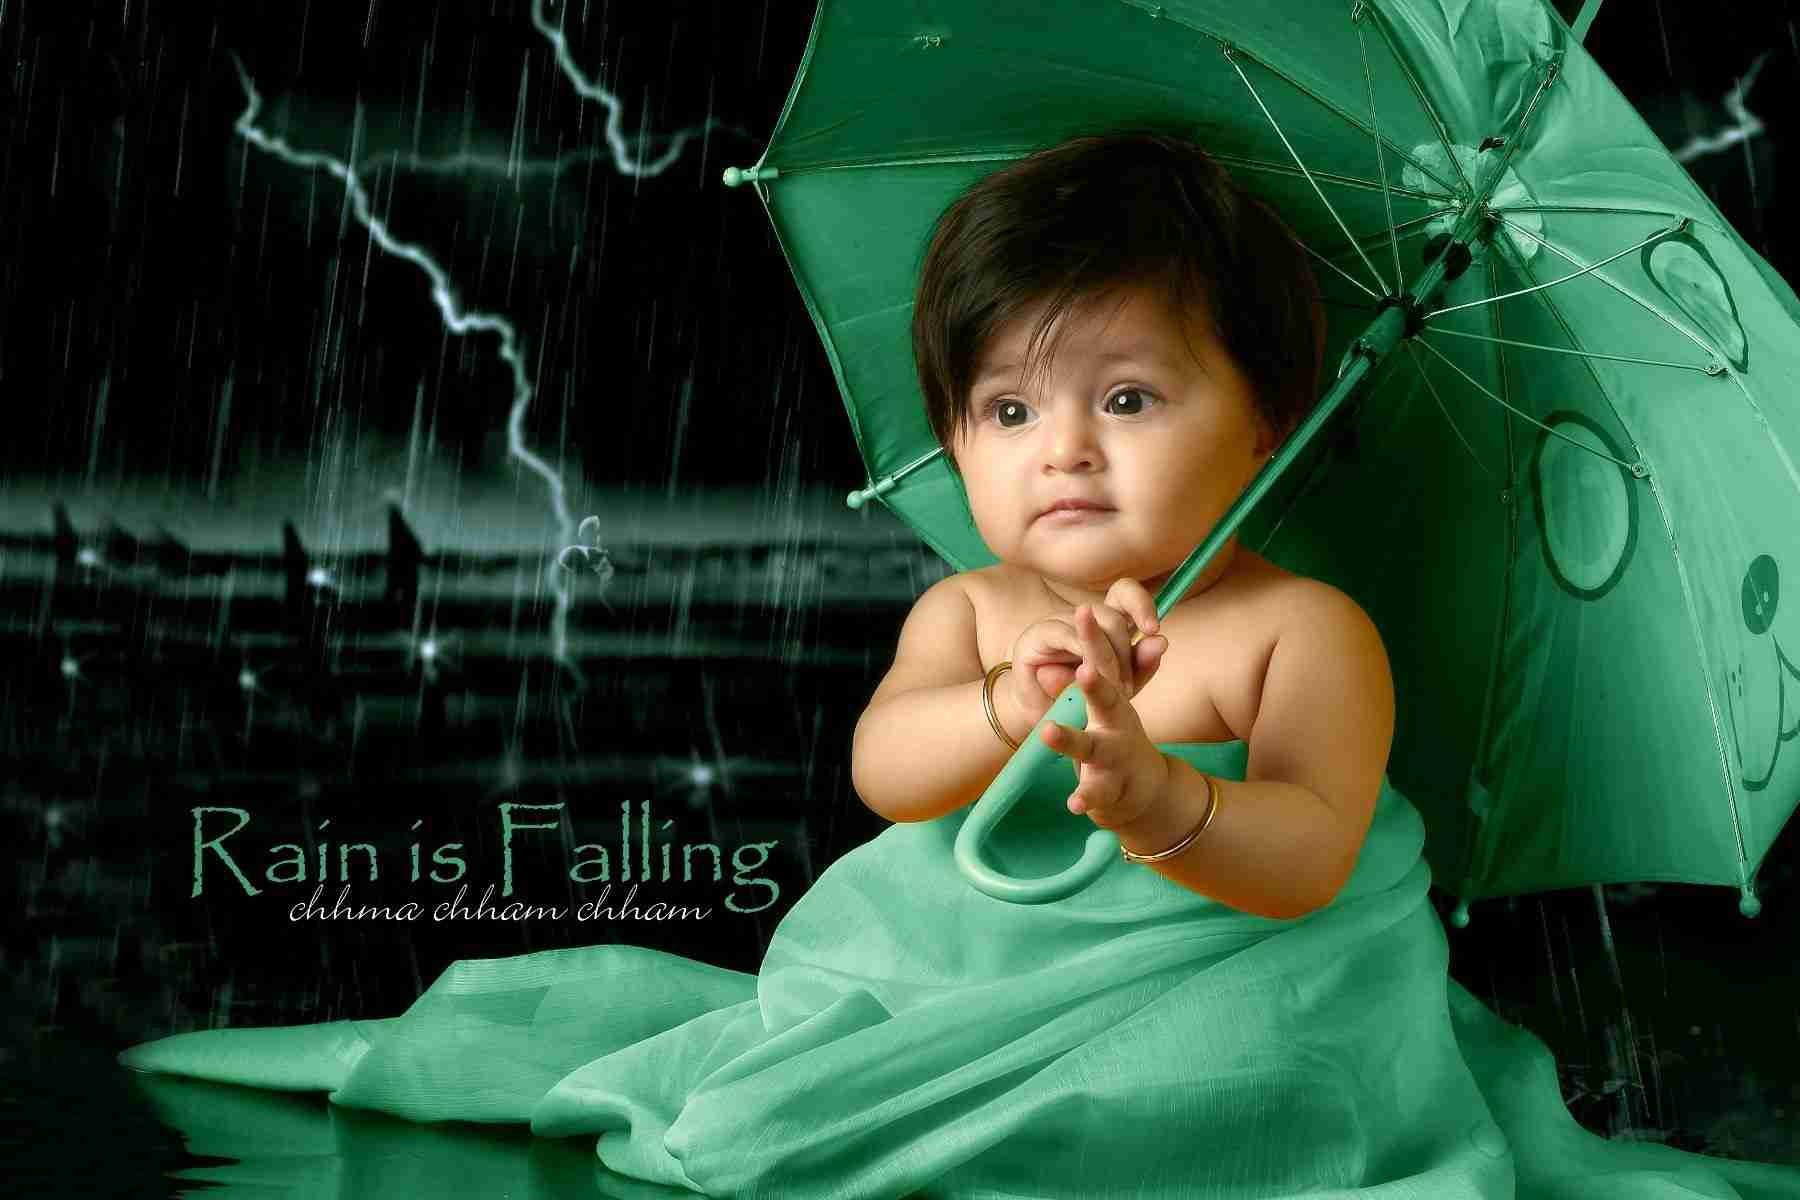 Cute Baby Photos Free Download For ...